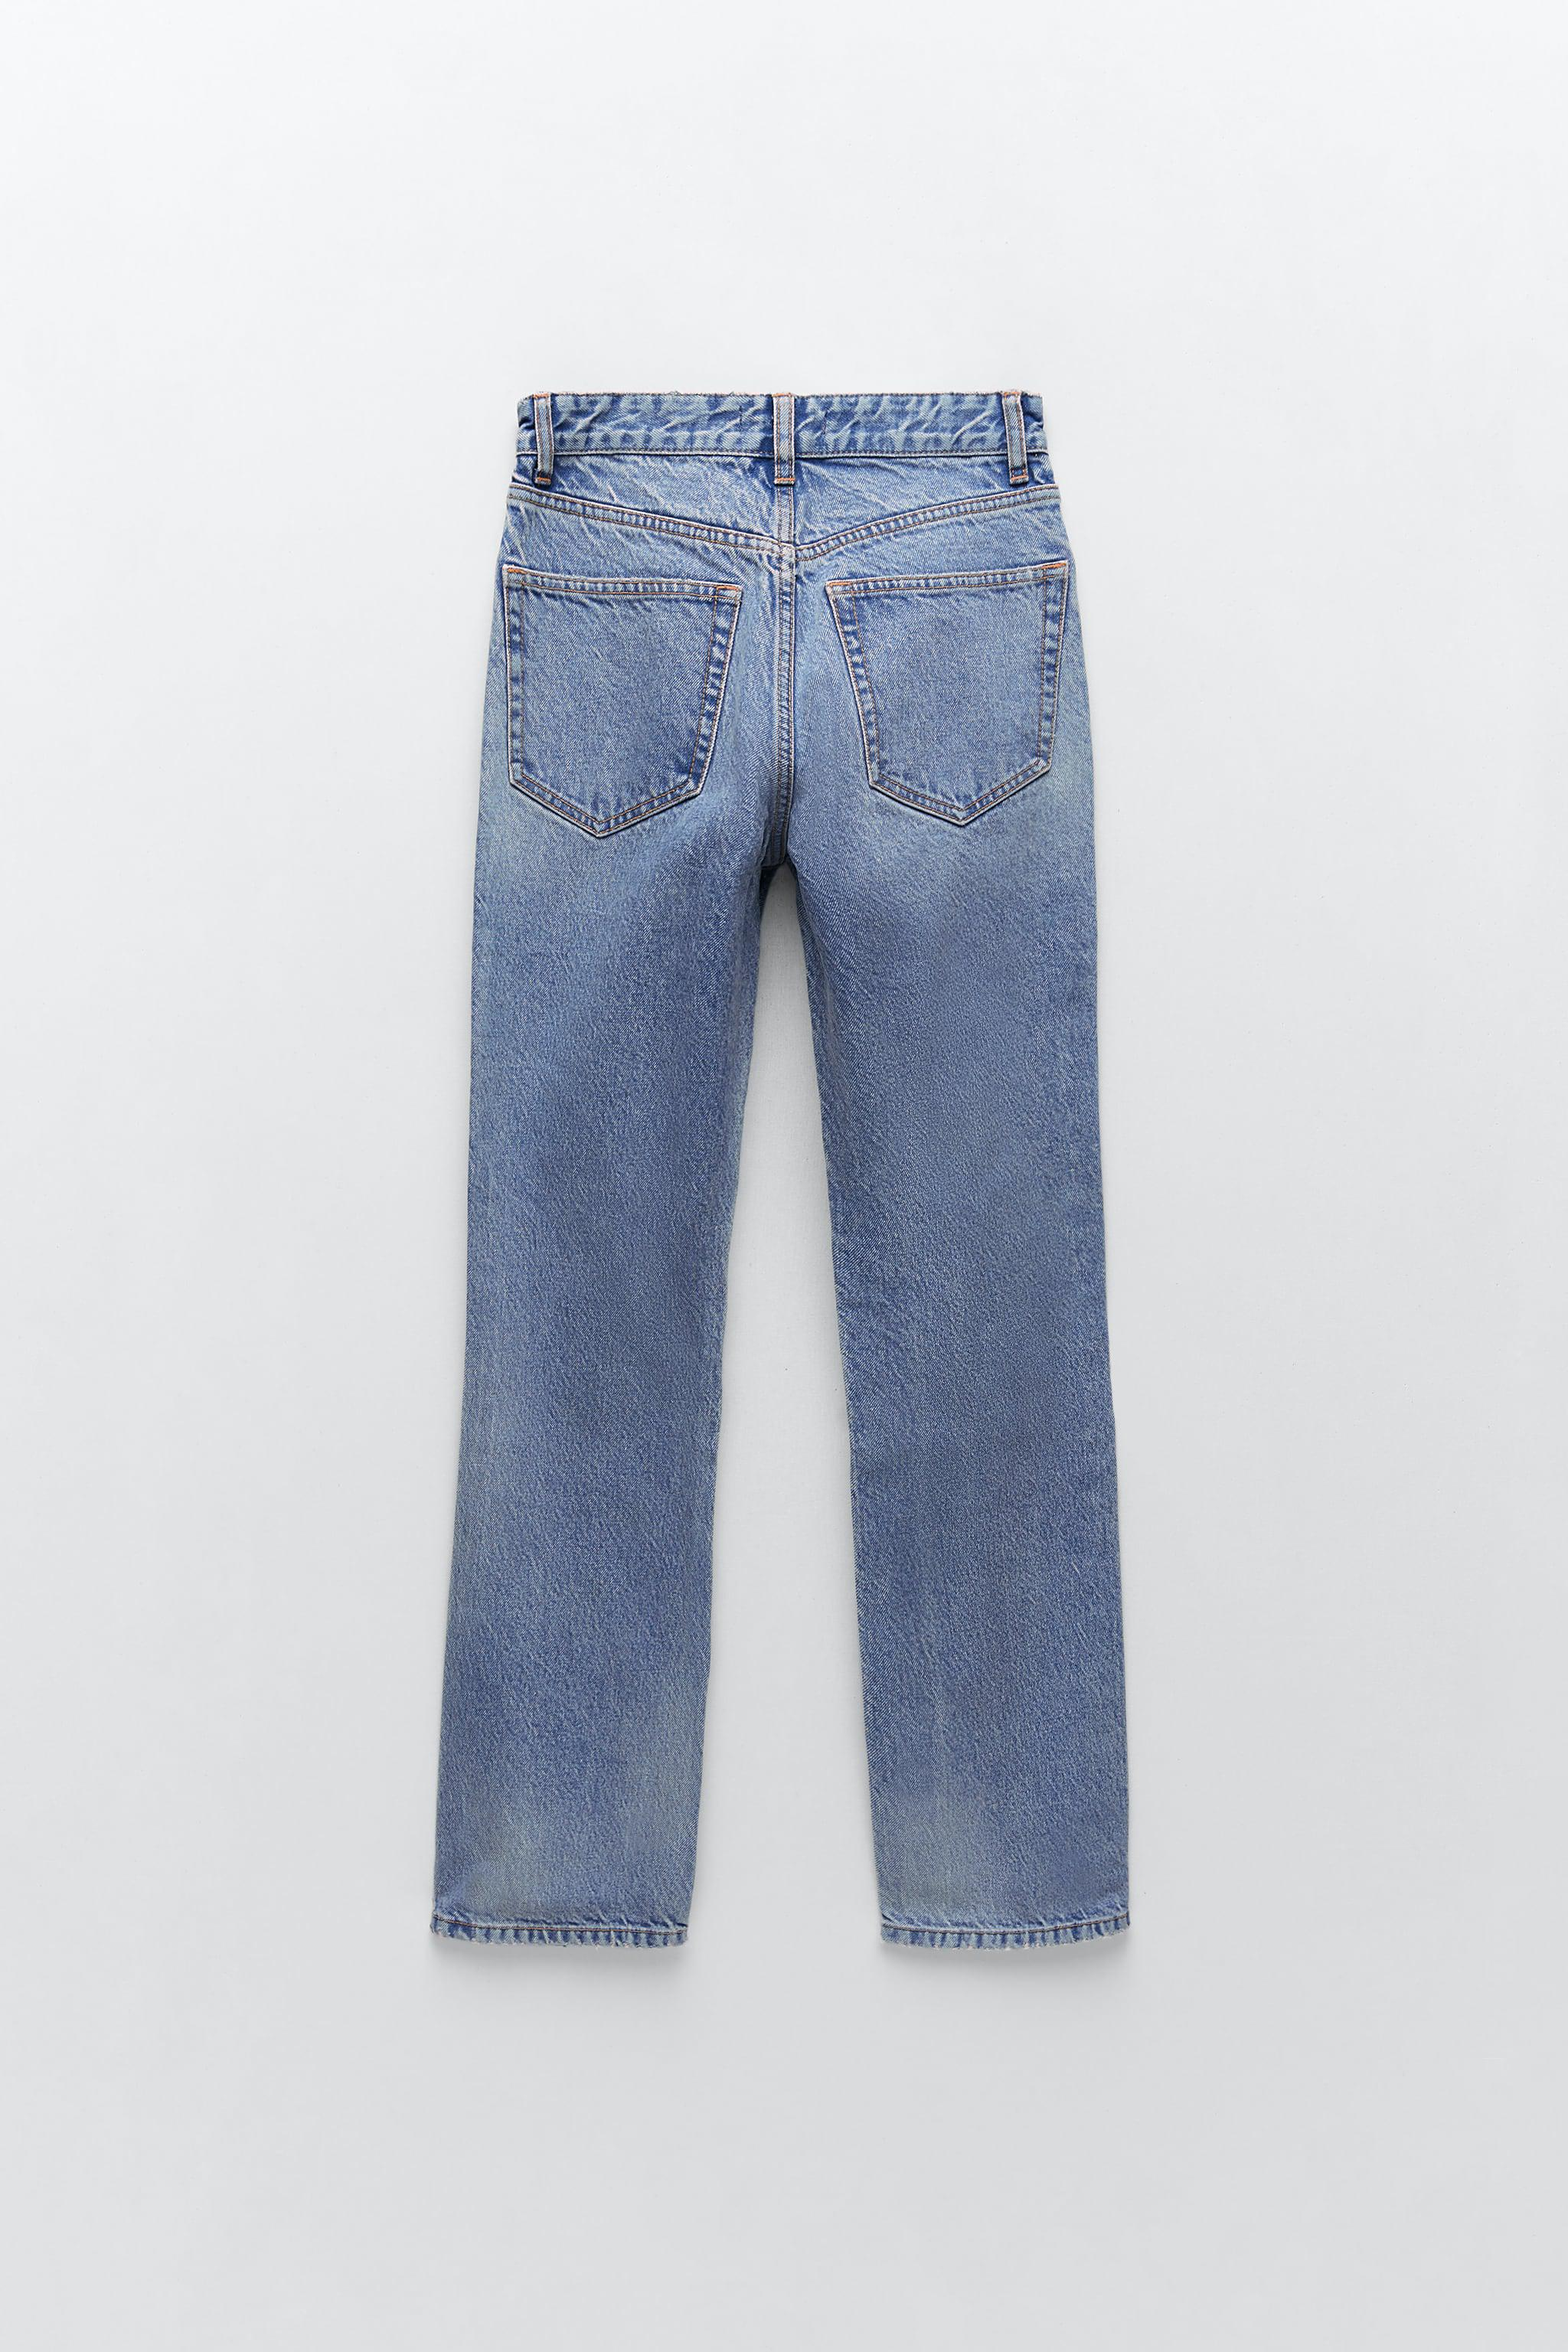 RIPPED STAIN DYE JEANS 5